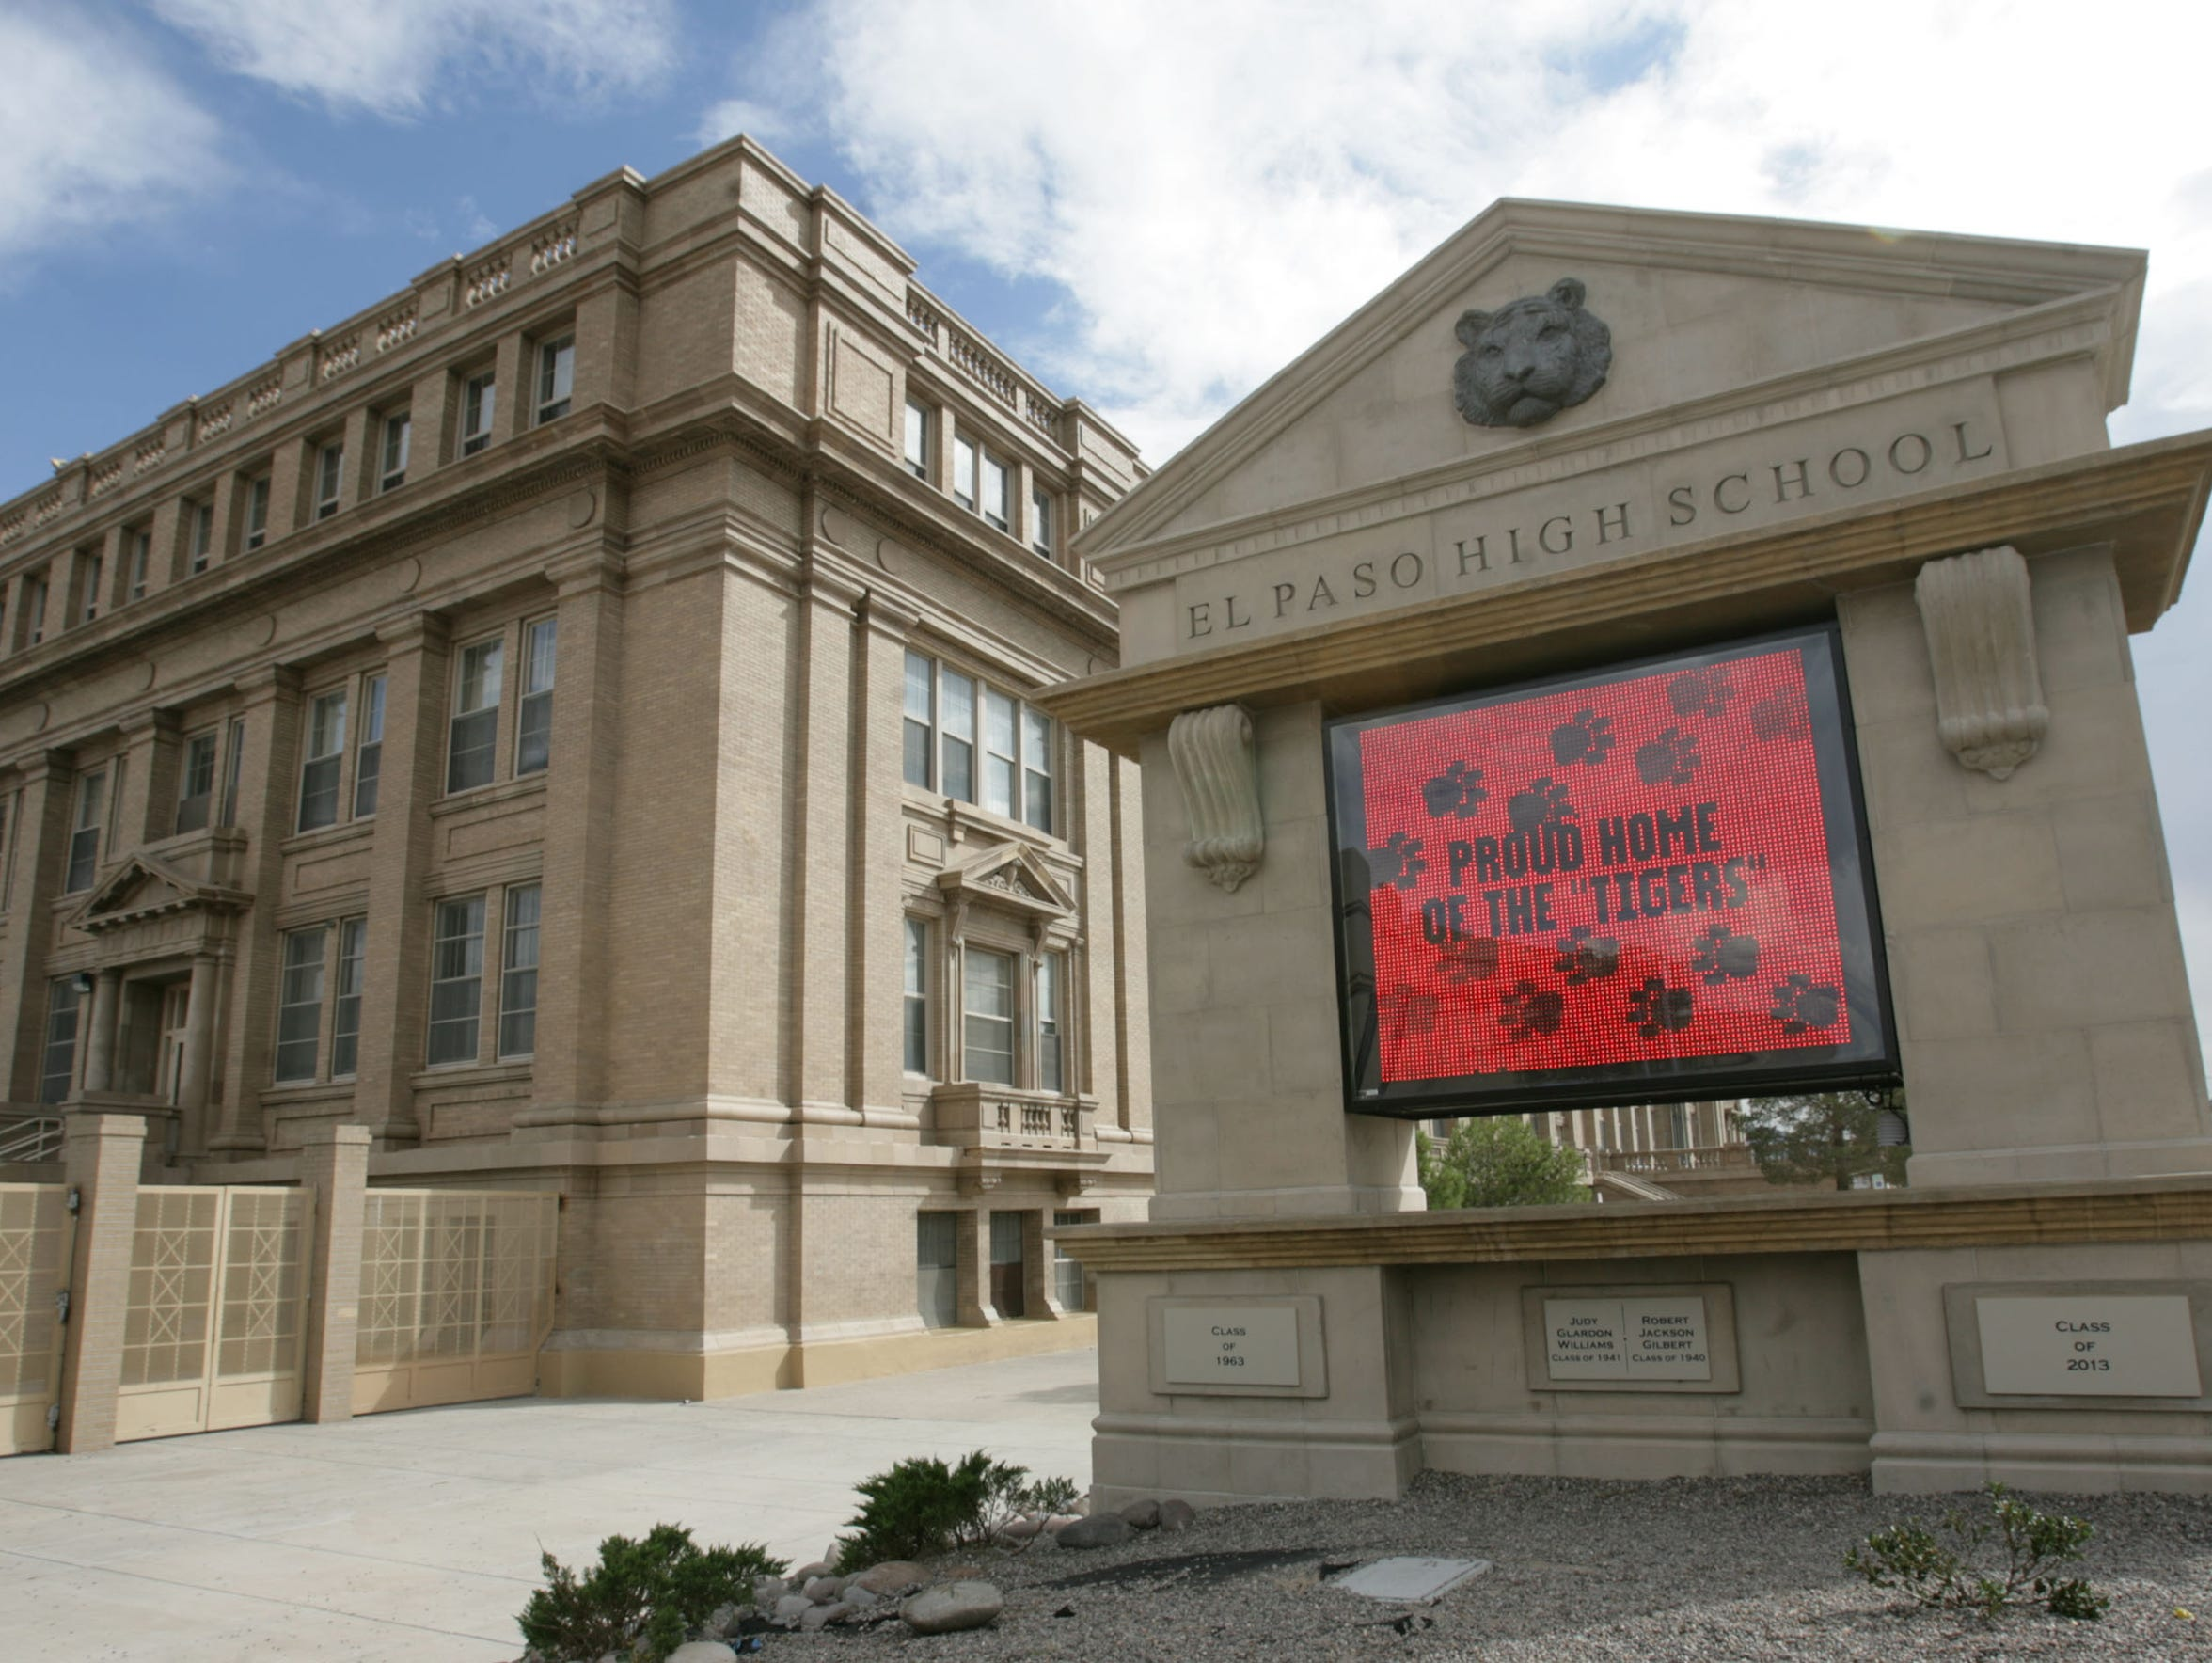 El Paso High School will benefit from $20 million in